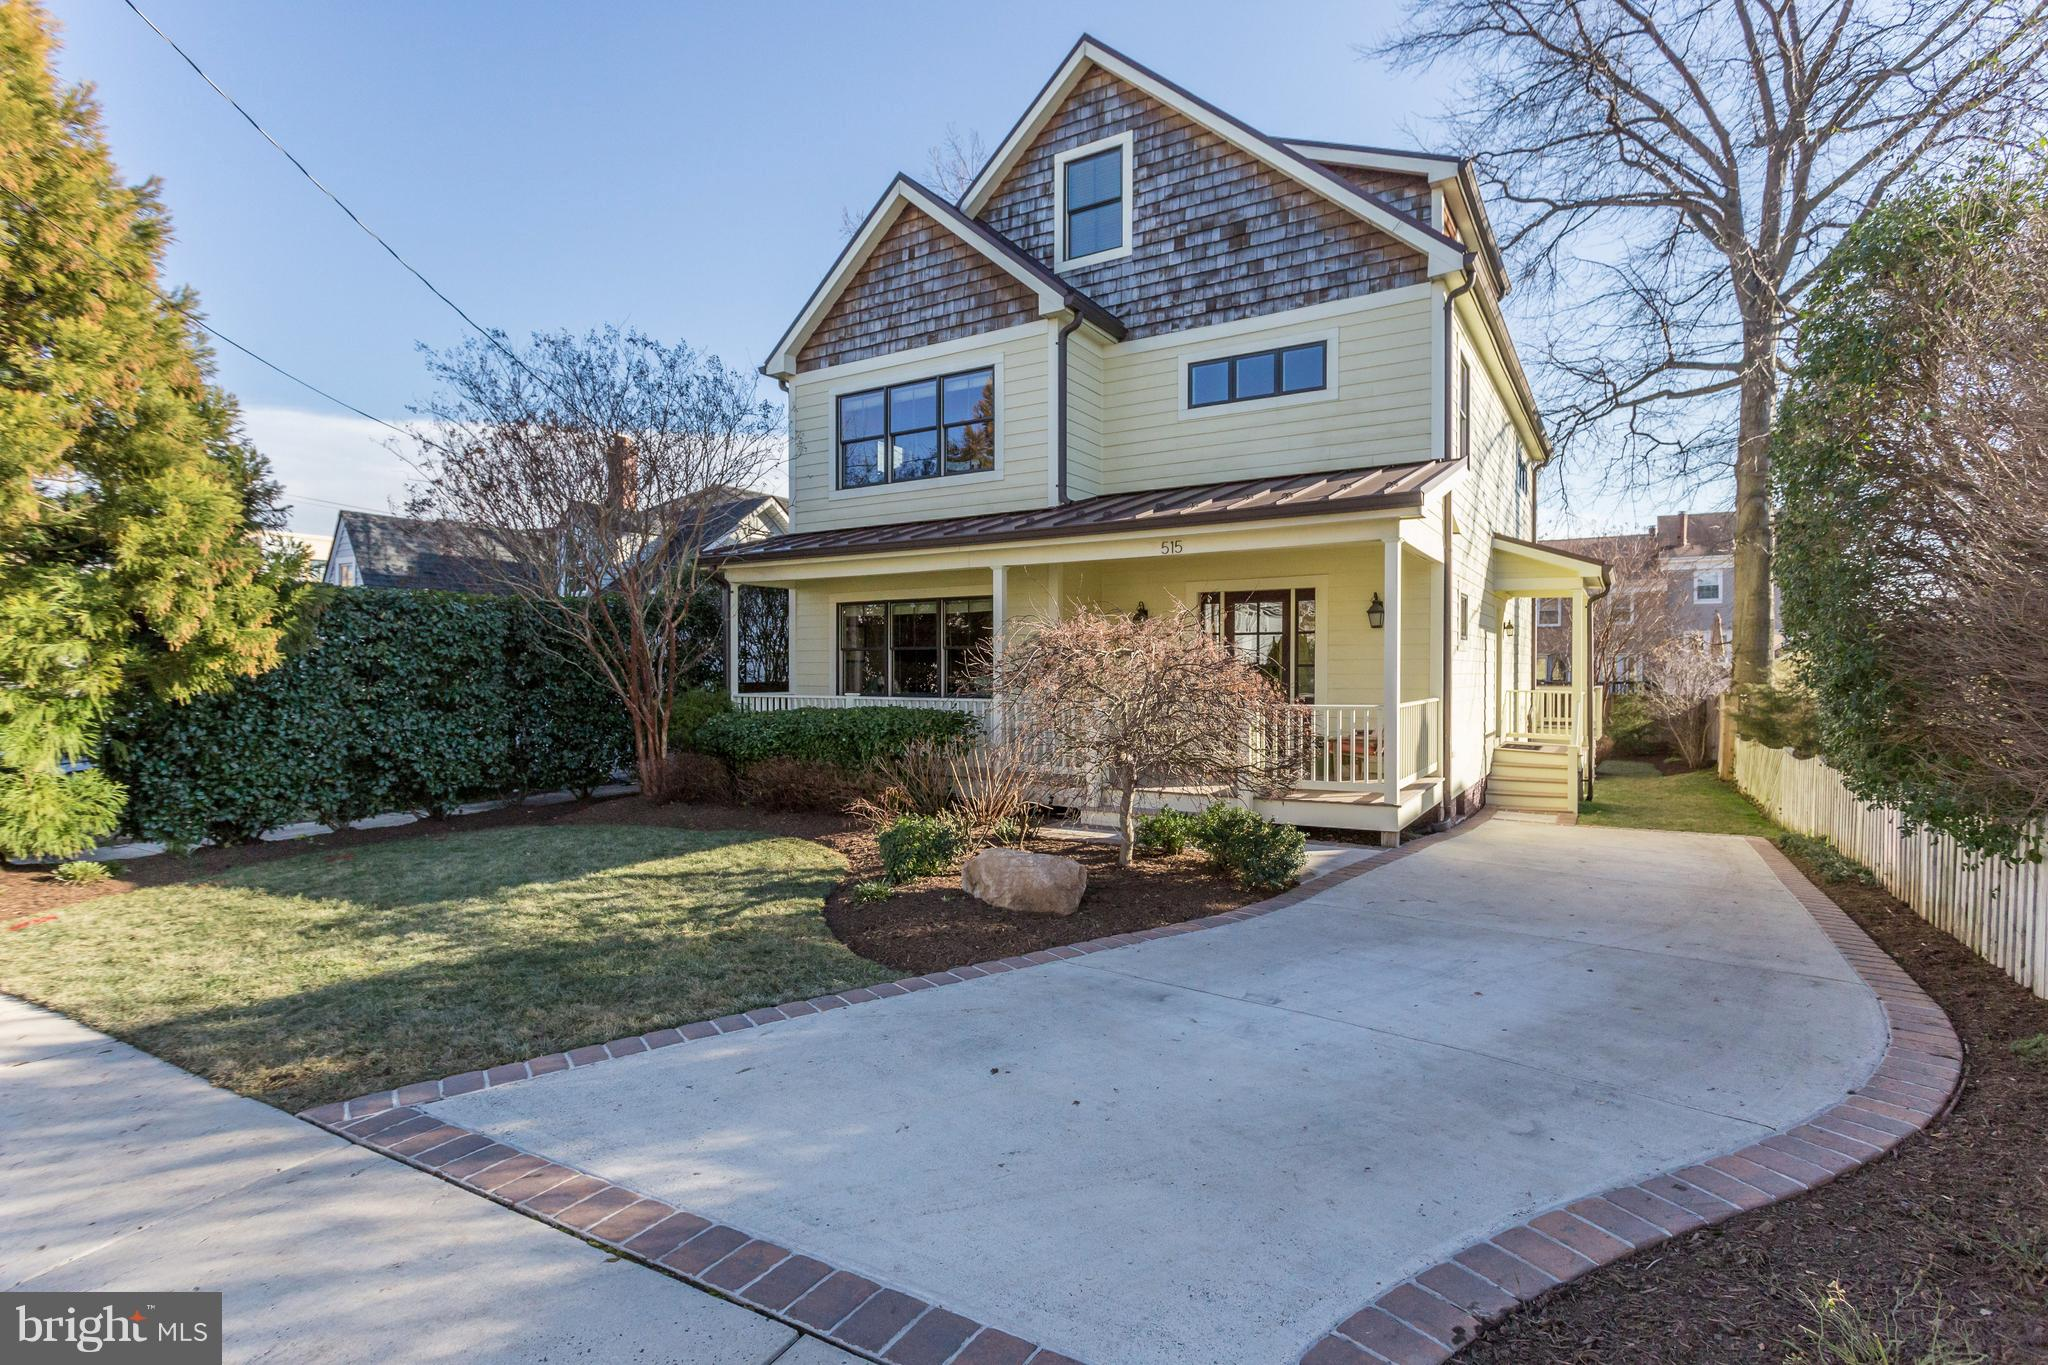 515 E WINDSOR AVENUE, ALEXANDRIA, VA 22301